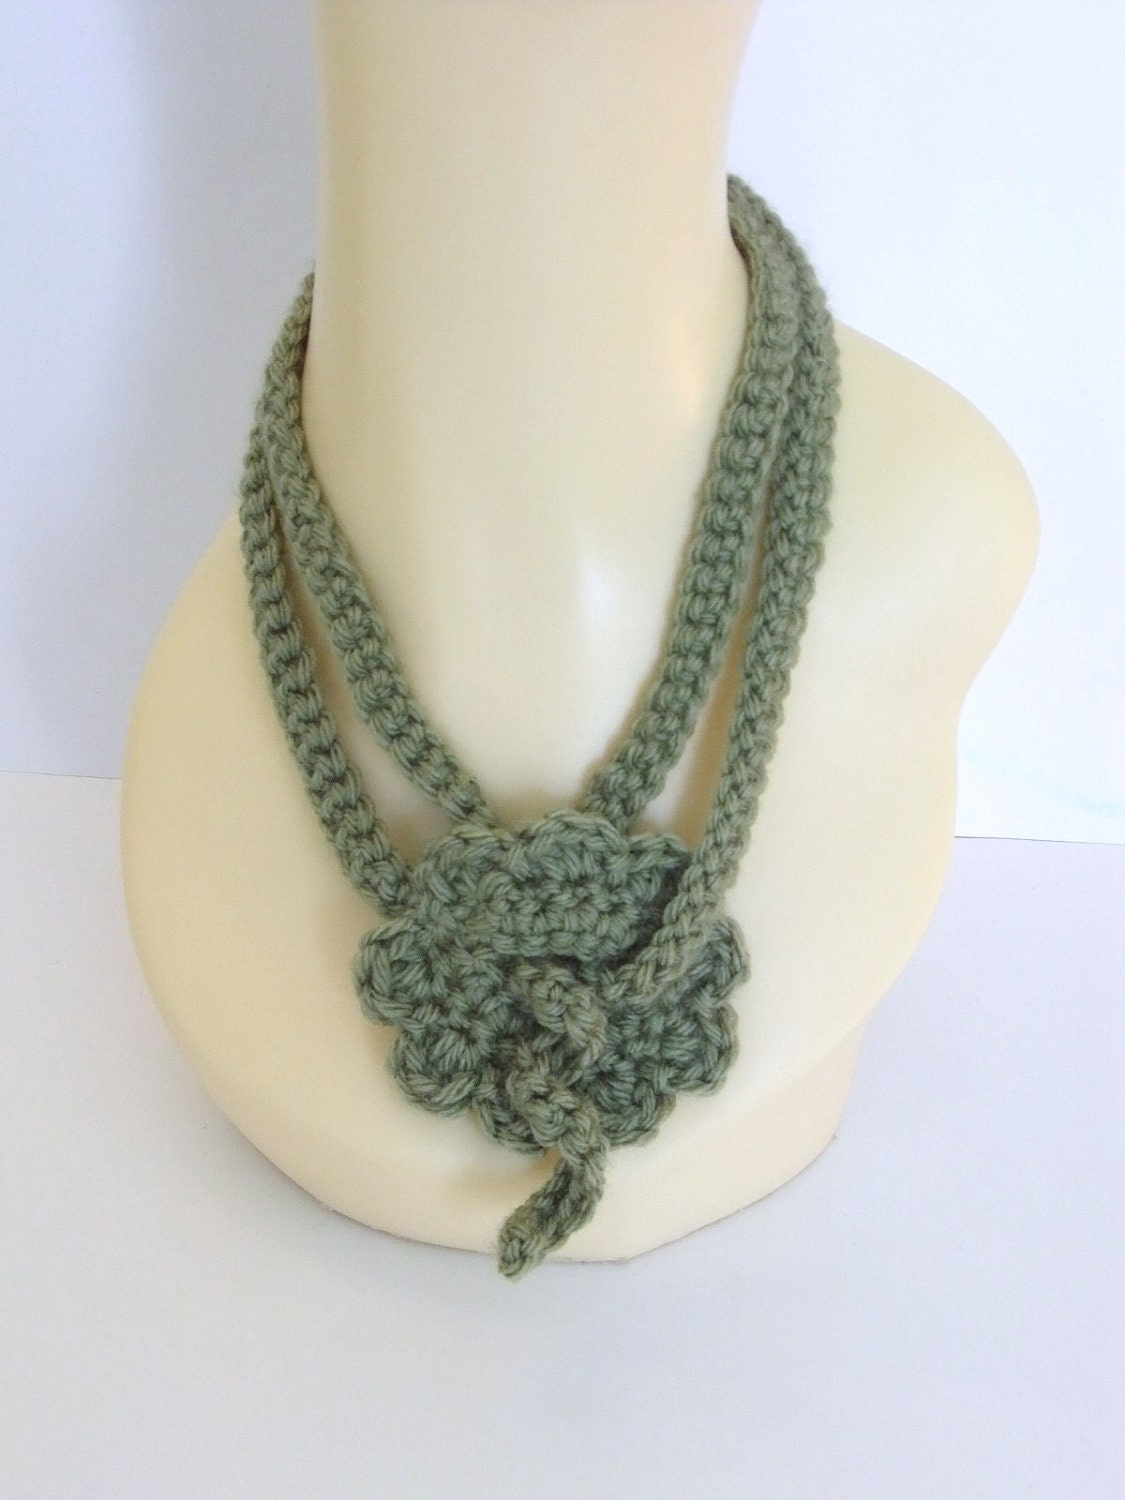 "Olive Green Handmade Crochet Fashion Necklace/Head Band or Belt 46""Long, Fashionable, Gift, Woman, Versatile"